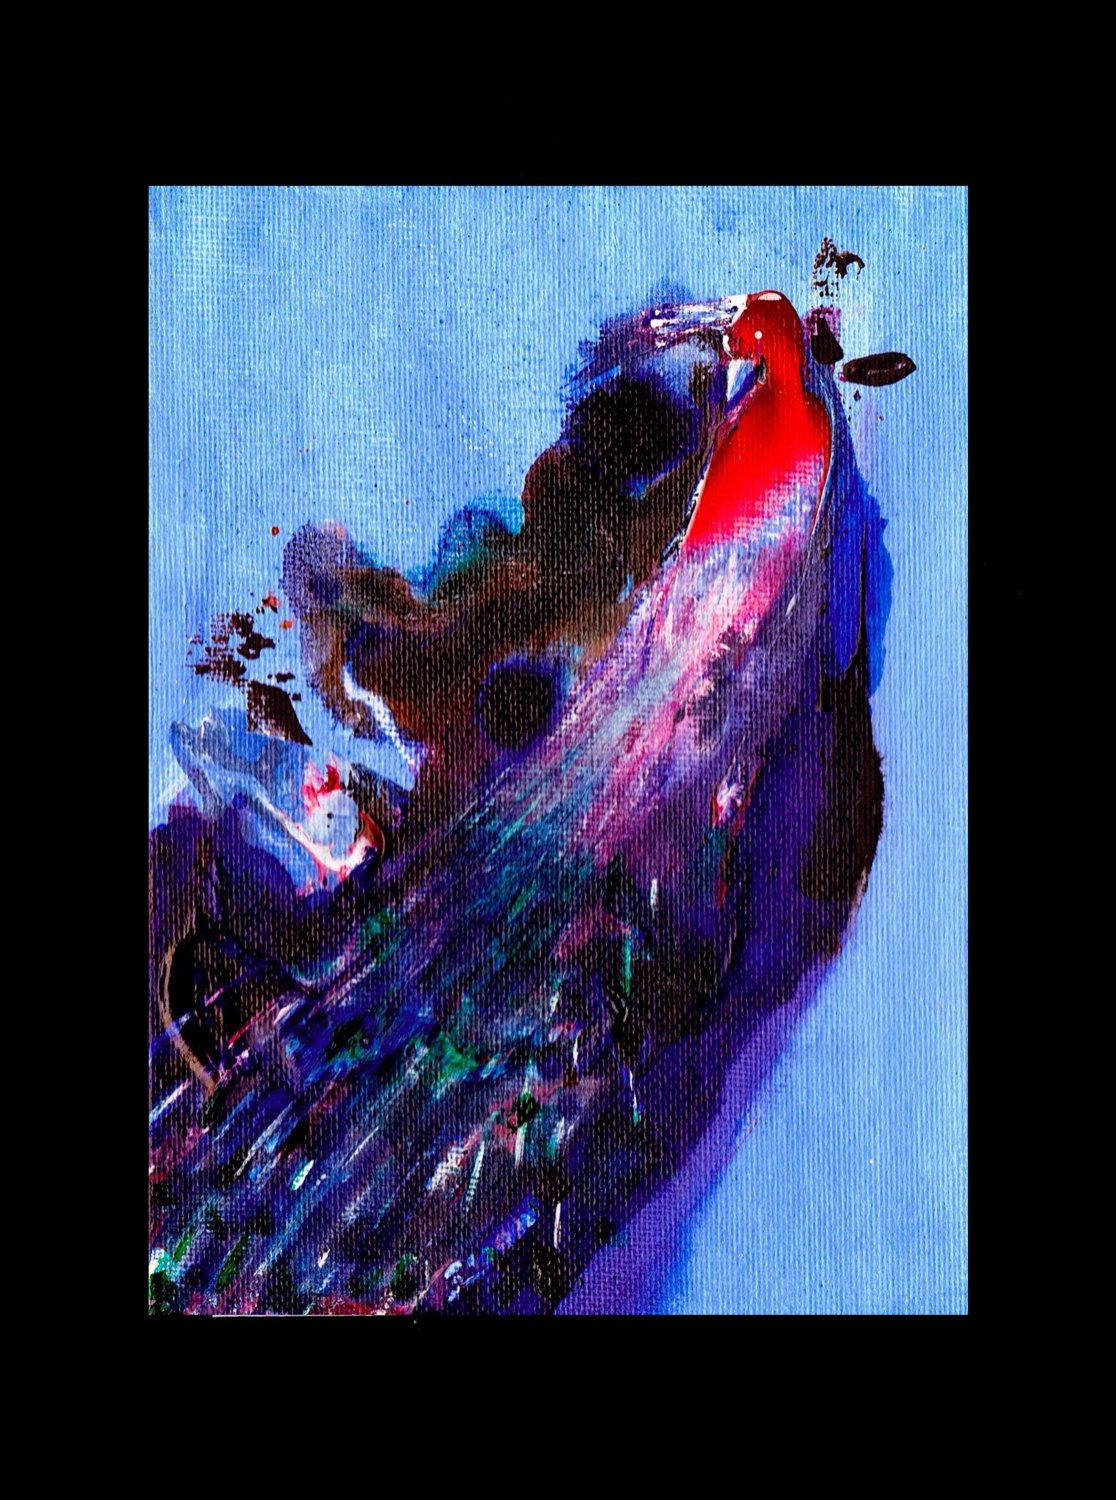 Abstract peacock colourful original acrylic painting modern wall